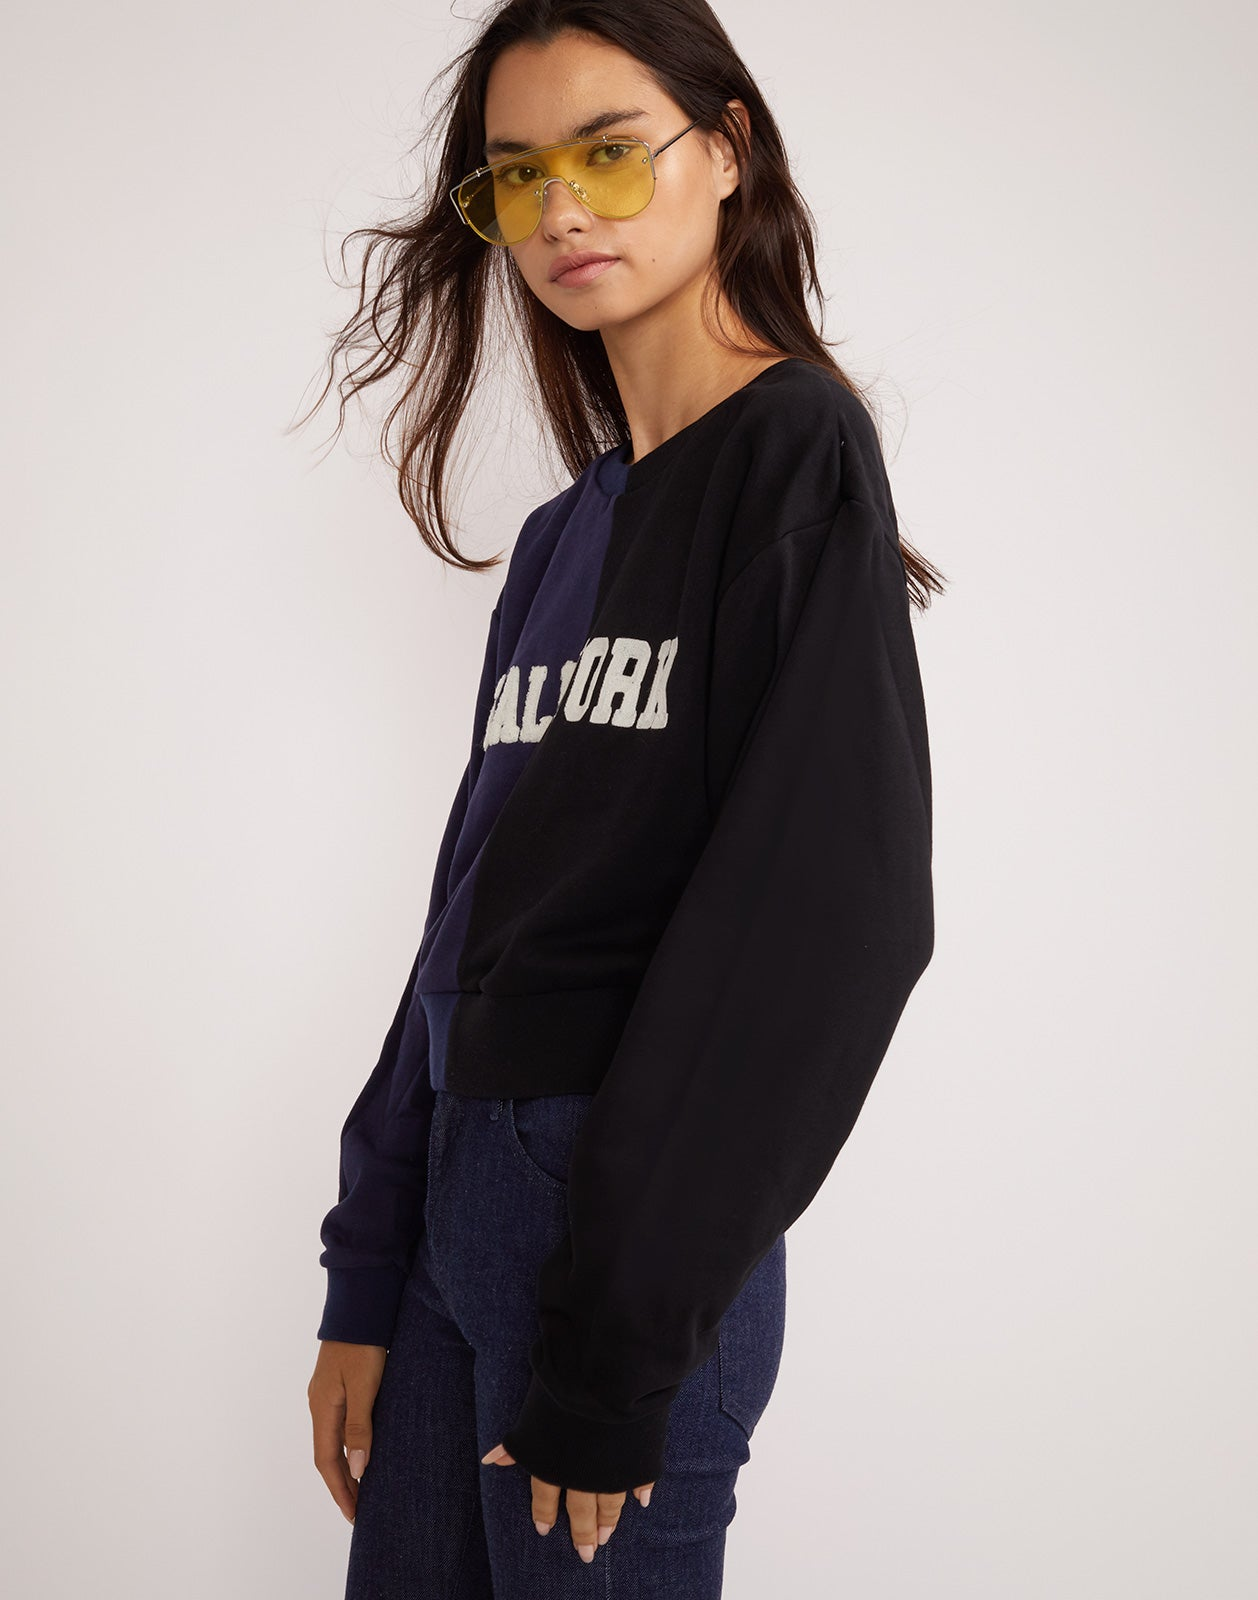 Side view of the CaliYork cropped sweatshirt in half navy half black.